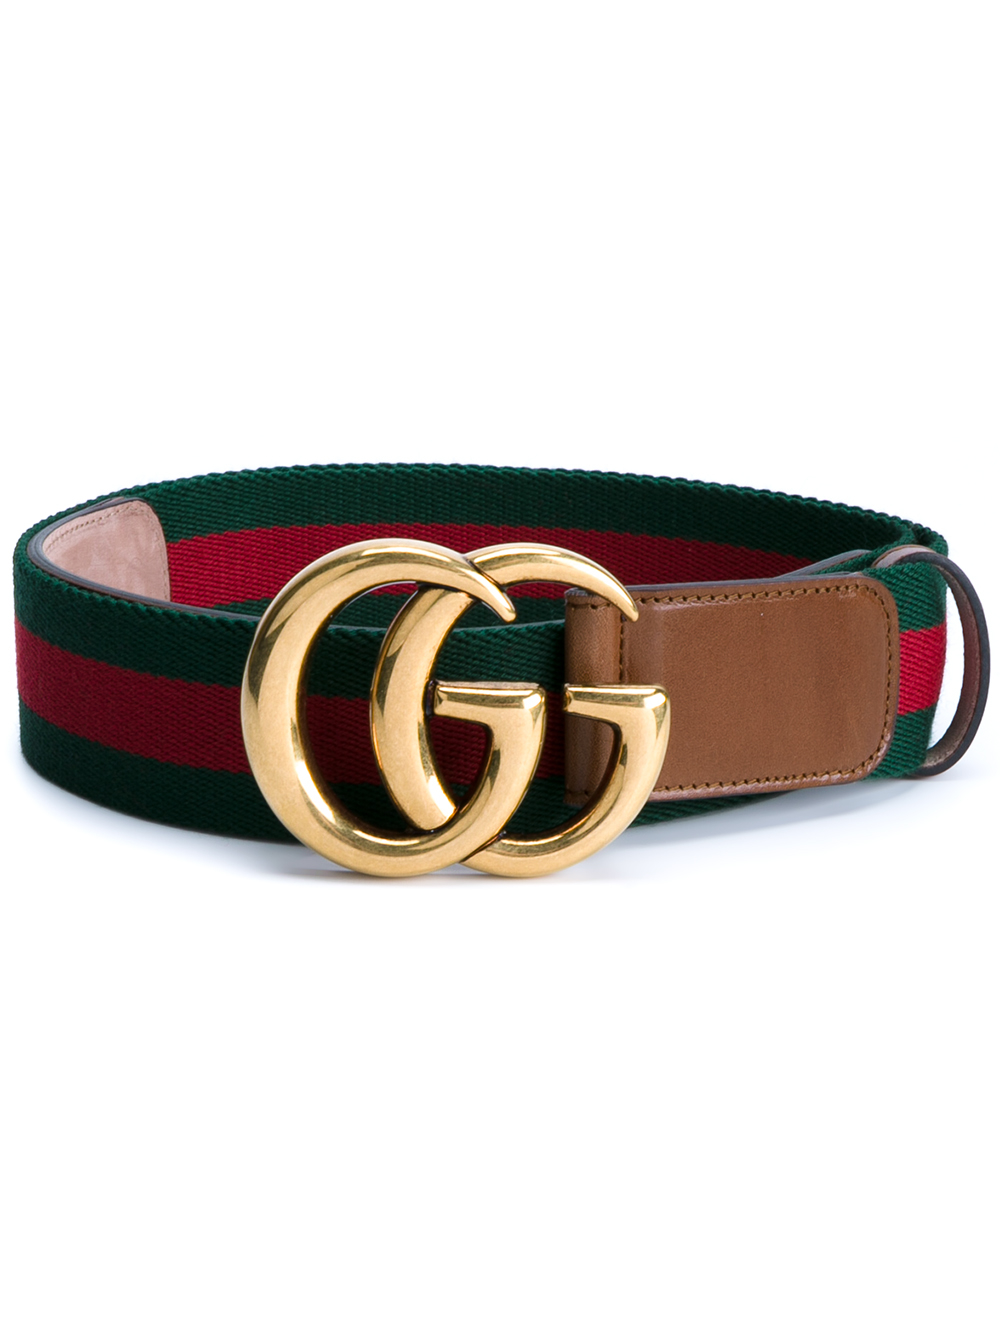 3181a4e92e3 Lyst - Gucci Web   Logo Canvas And Leather Belt in Green